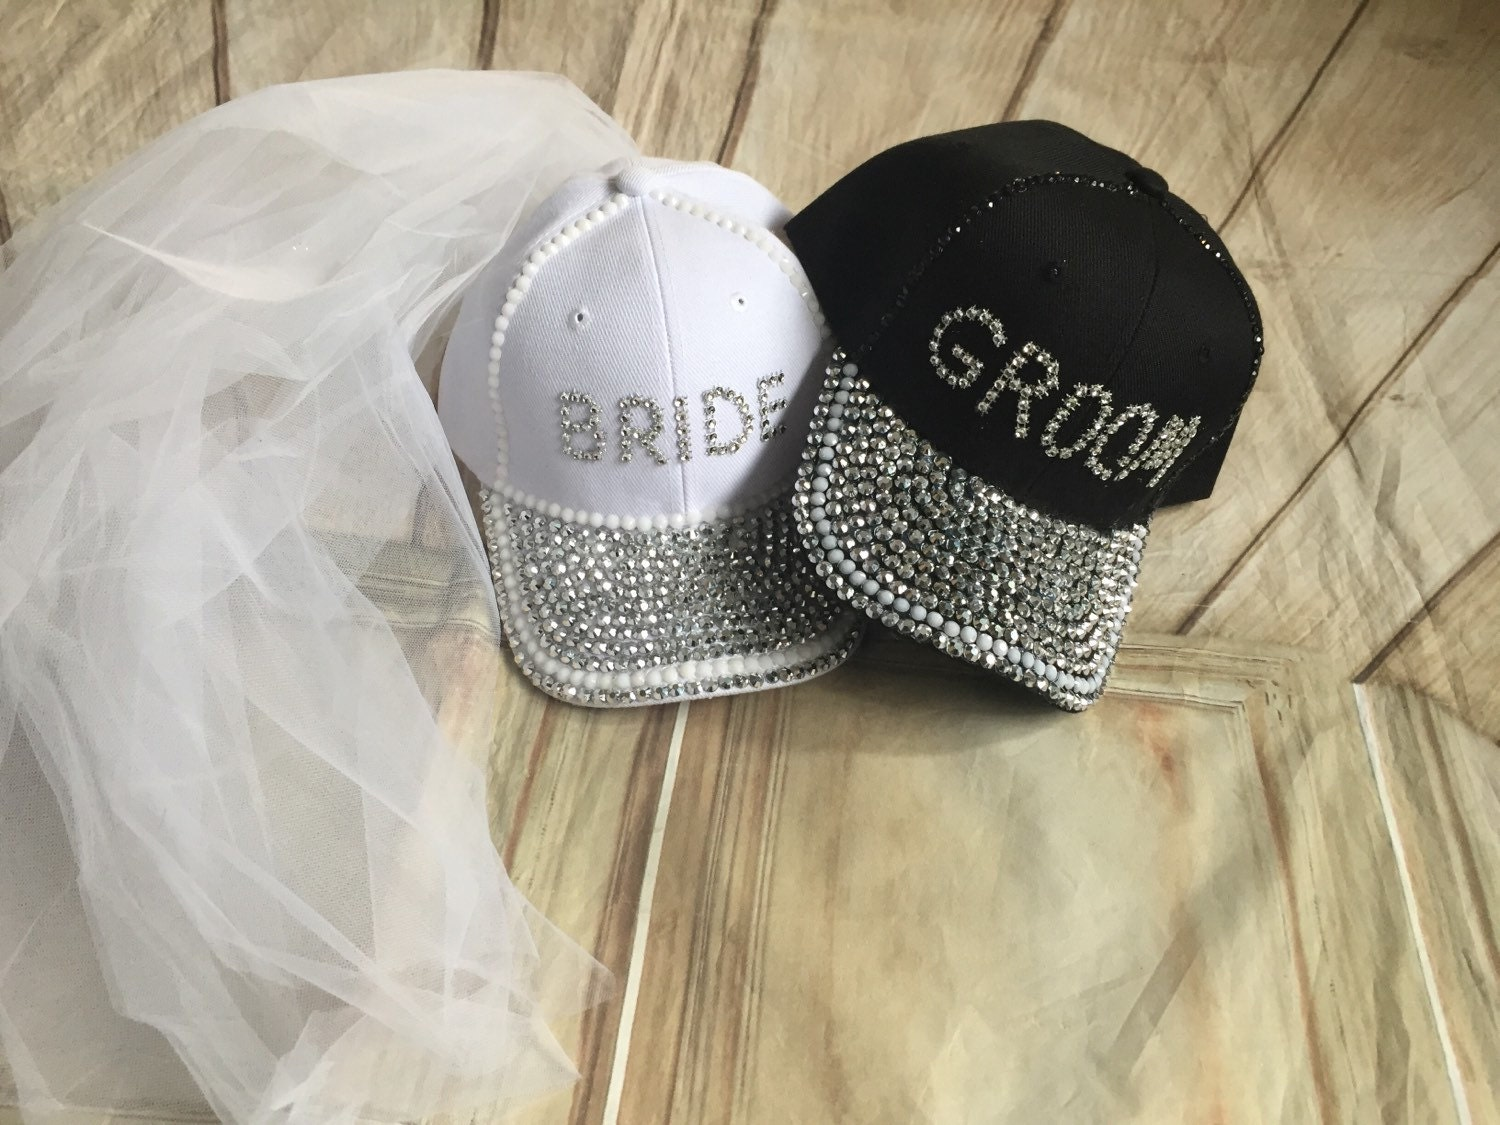 Homemade Wedding Gift Ideas For Bride And Groom: Bride Groom Hat-wedding-gifts-bachelorette